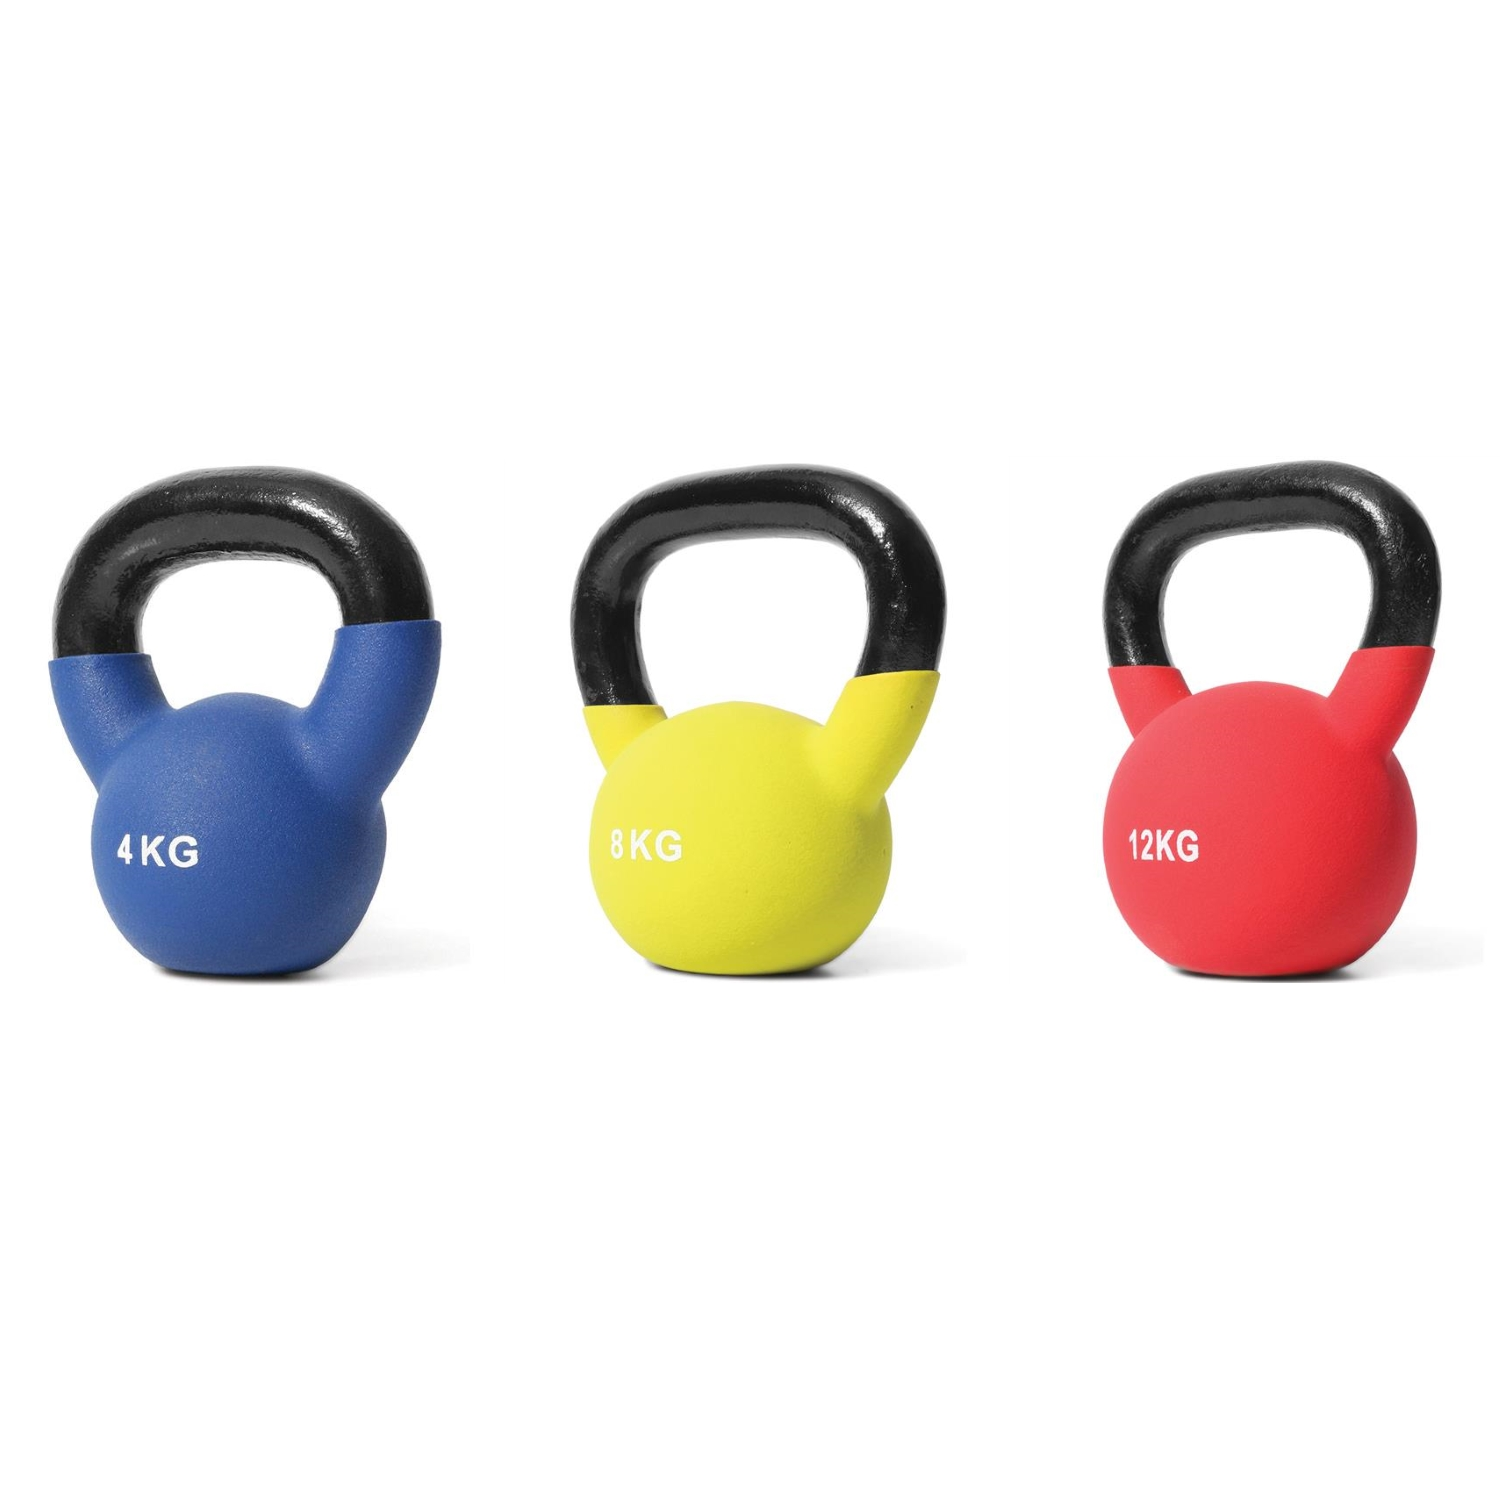 Coloured Neoprene Beginner Kettlebell Set (1 x 4kg, 1 x 8kg, 1 x 12kg)